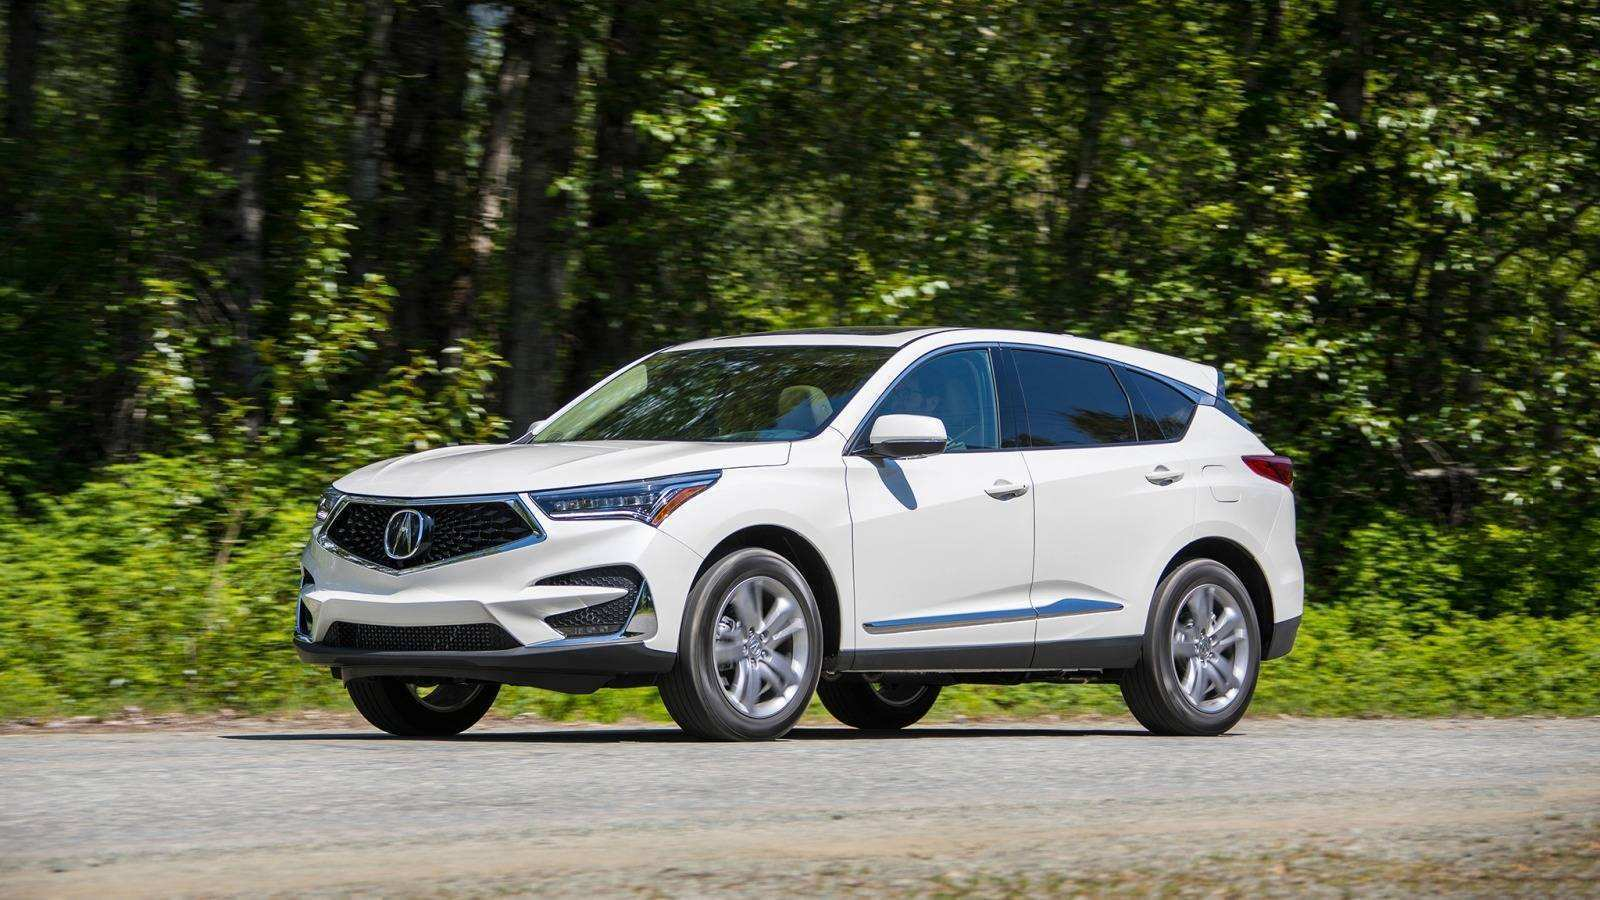 92 New Acura 2019 Crossover First Drive Interior by Acura 2019 Crossover First Drive